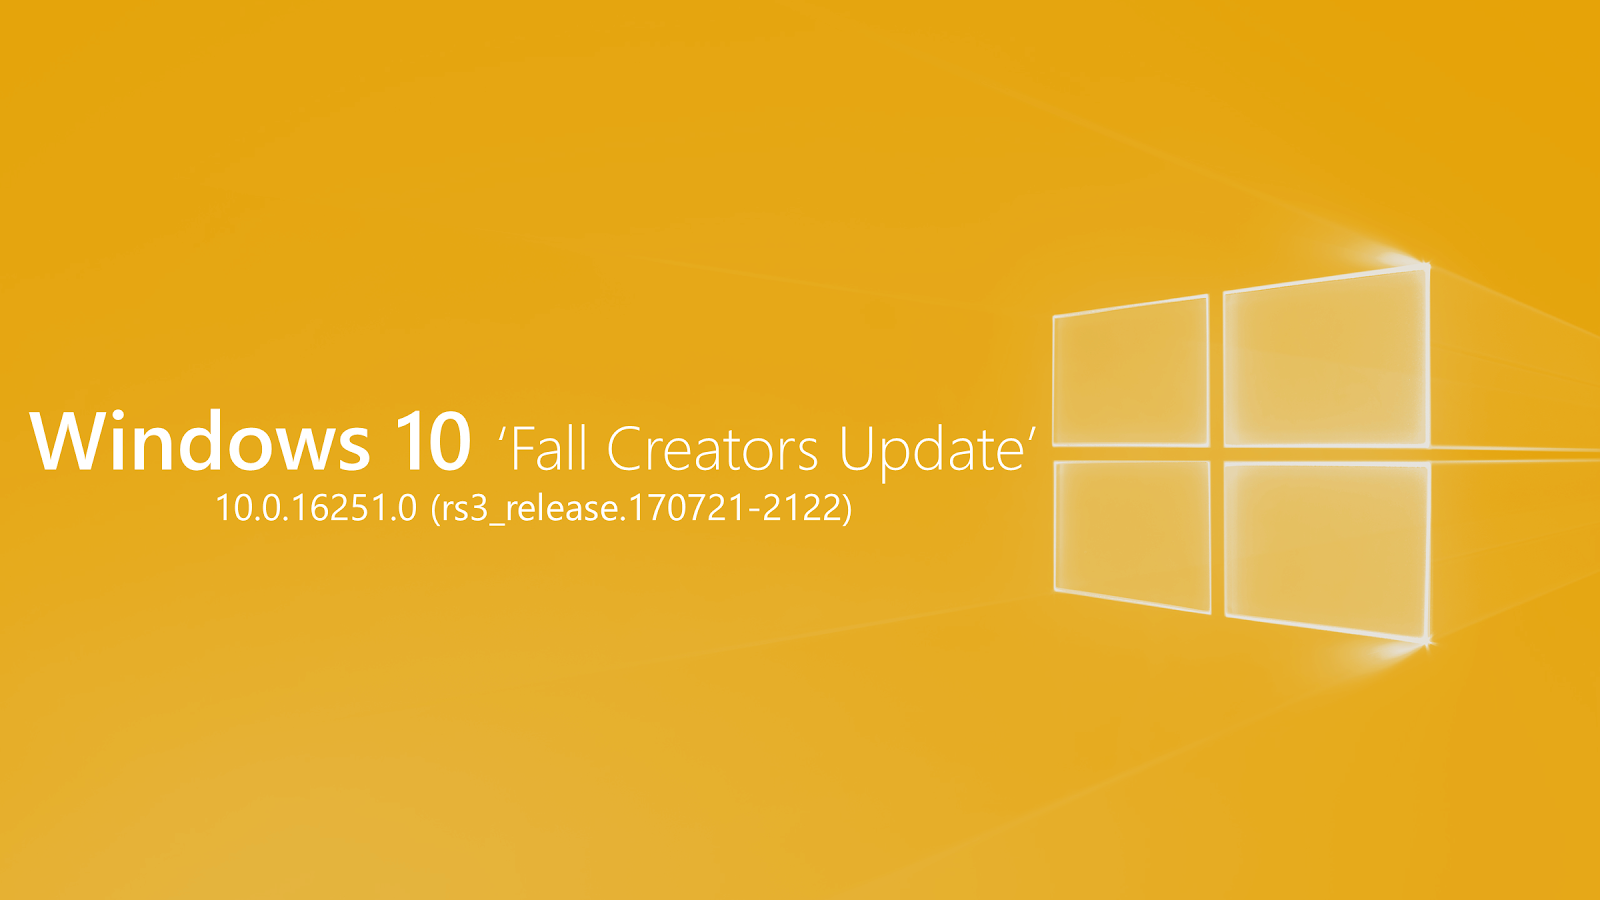 Windows 10 Build 16251 now available for Insiders - Download ISO